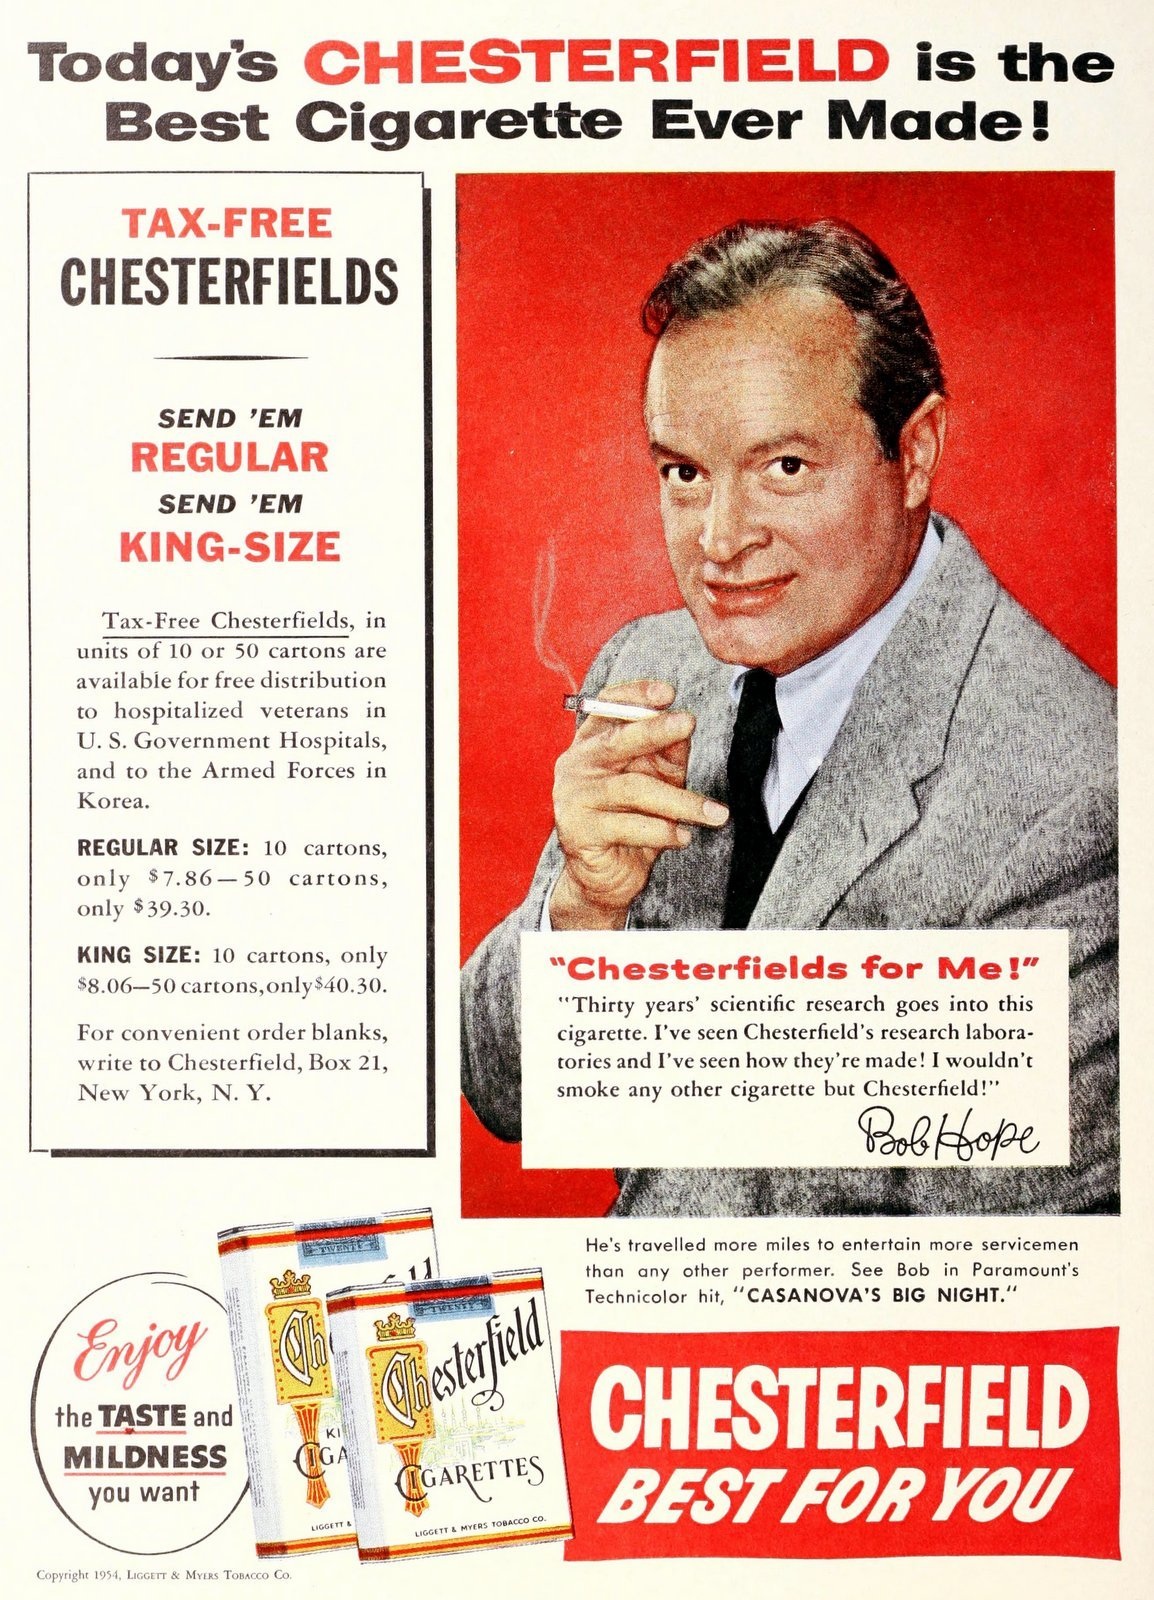 Vintage actor Bob Hope for Chesterfield cigarettes (1954)